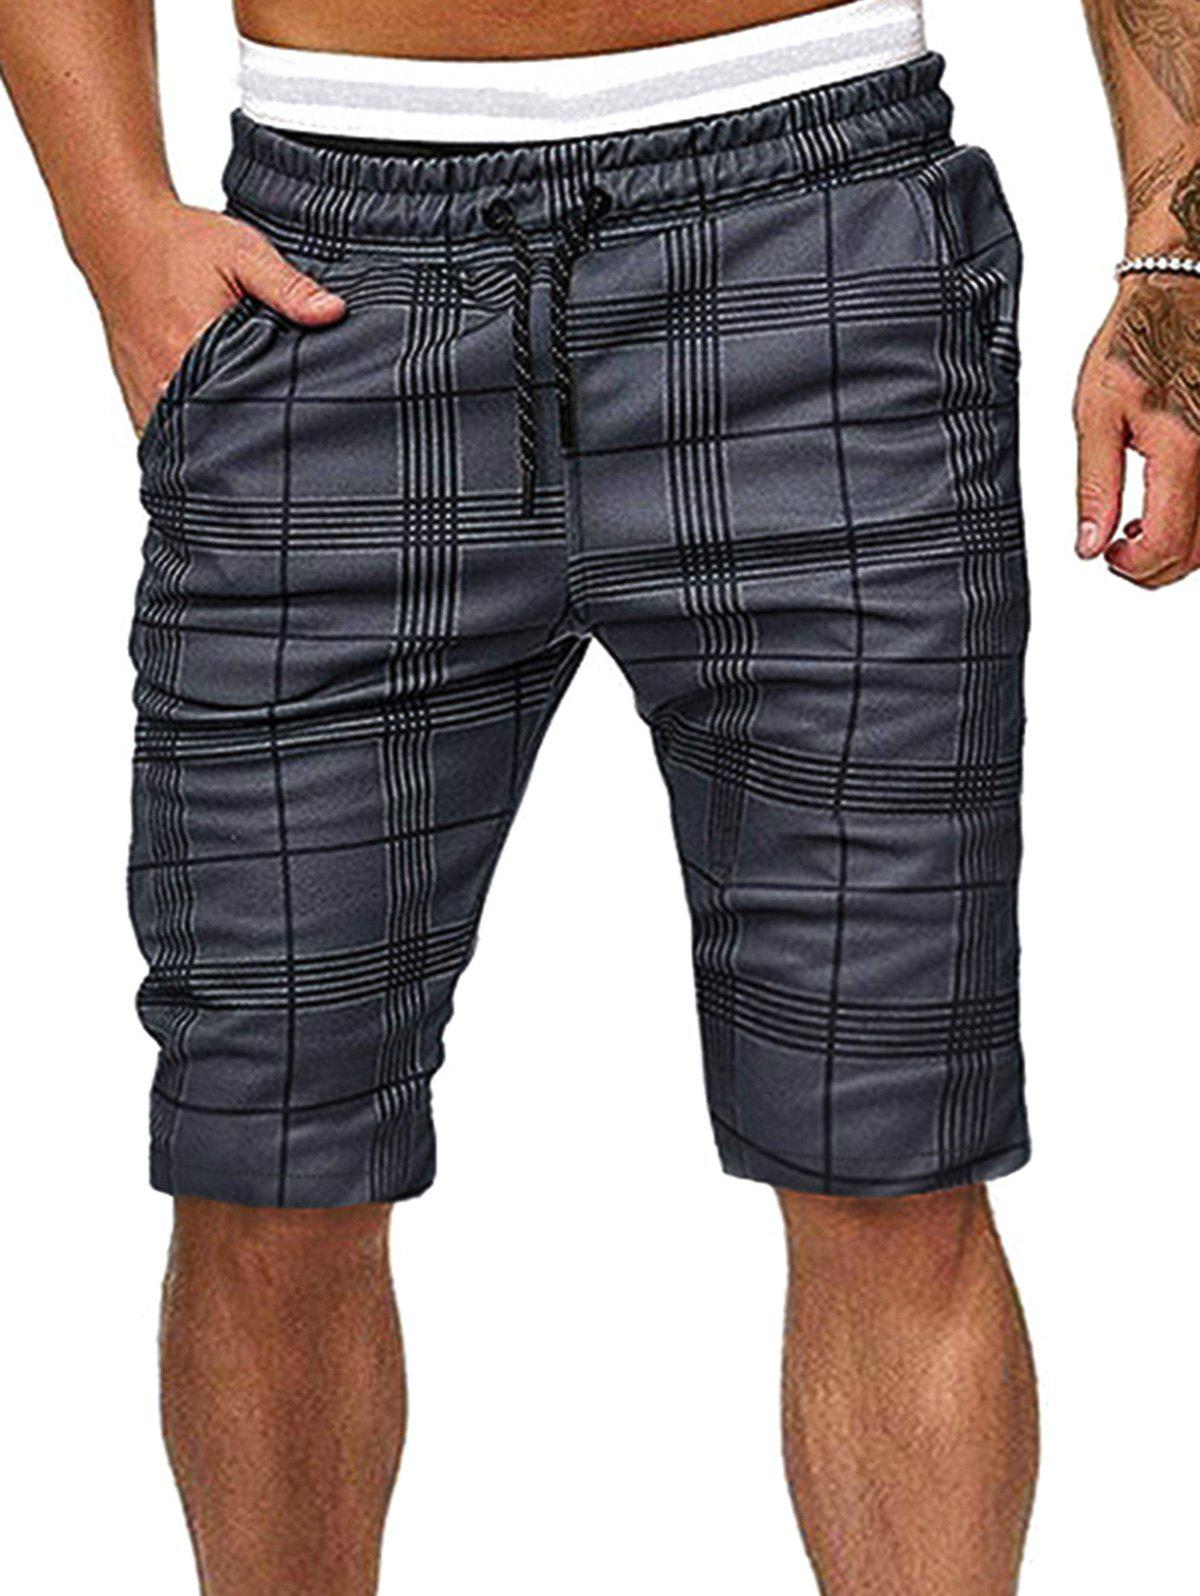 Grid Print Drawstring Fifth Shorts - GRAY S